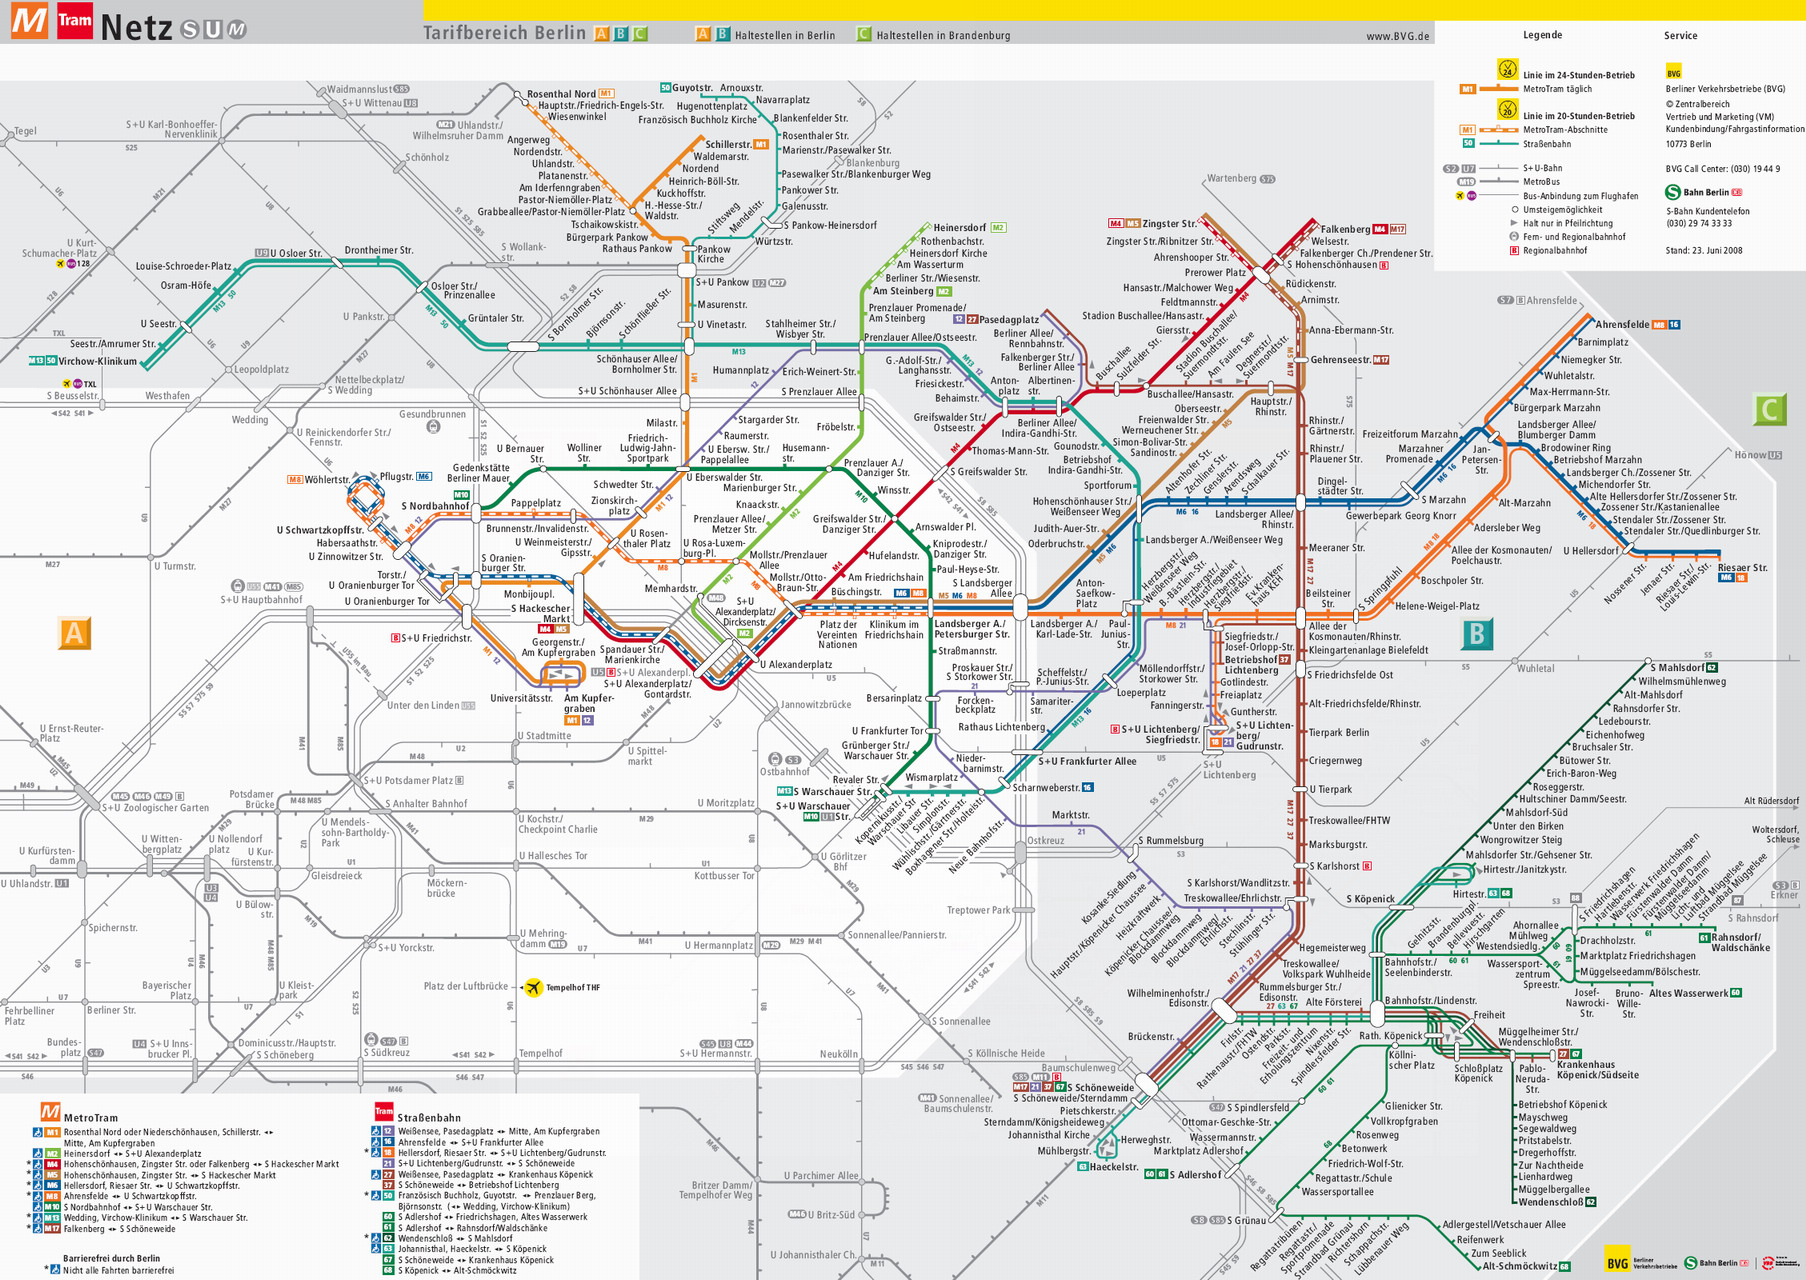 The Berlin tram system (shown in thecolored lines) is an extensive streetcar system that predominately serves the eastern metro area supporting economic and social activity along the system and at intermodal nodes.